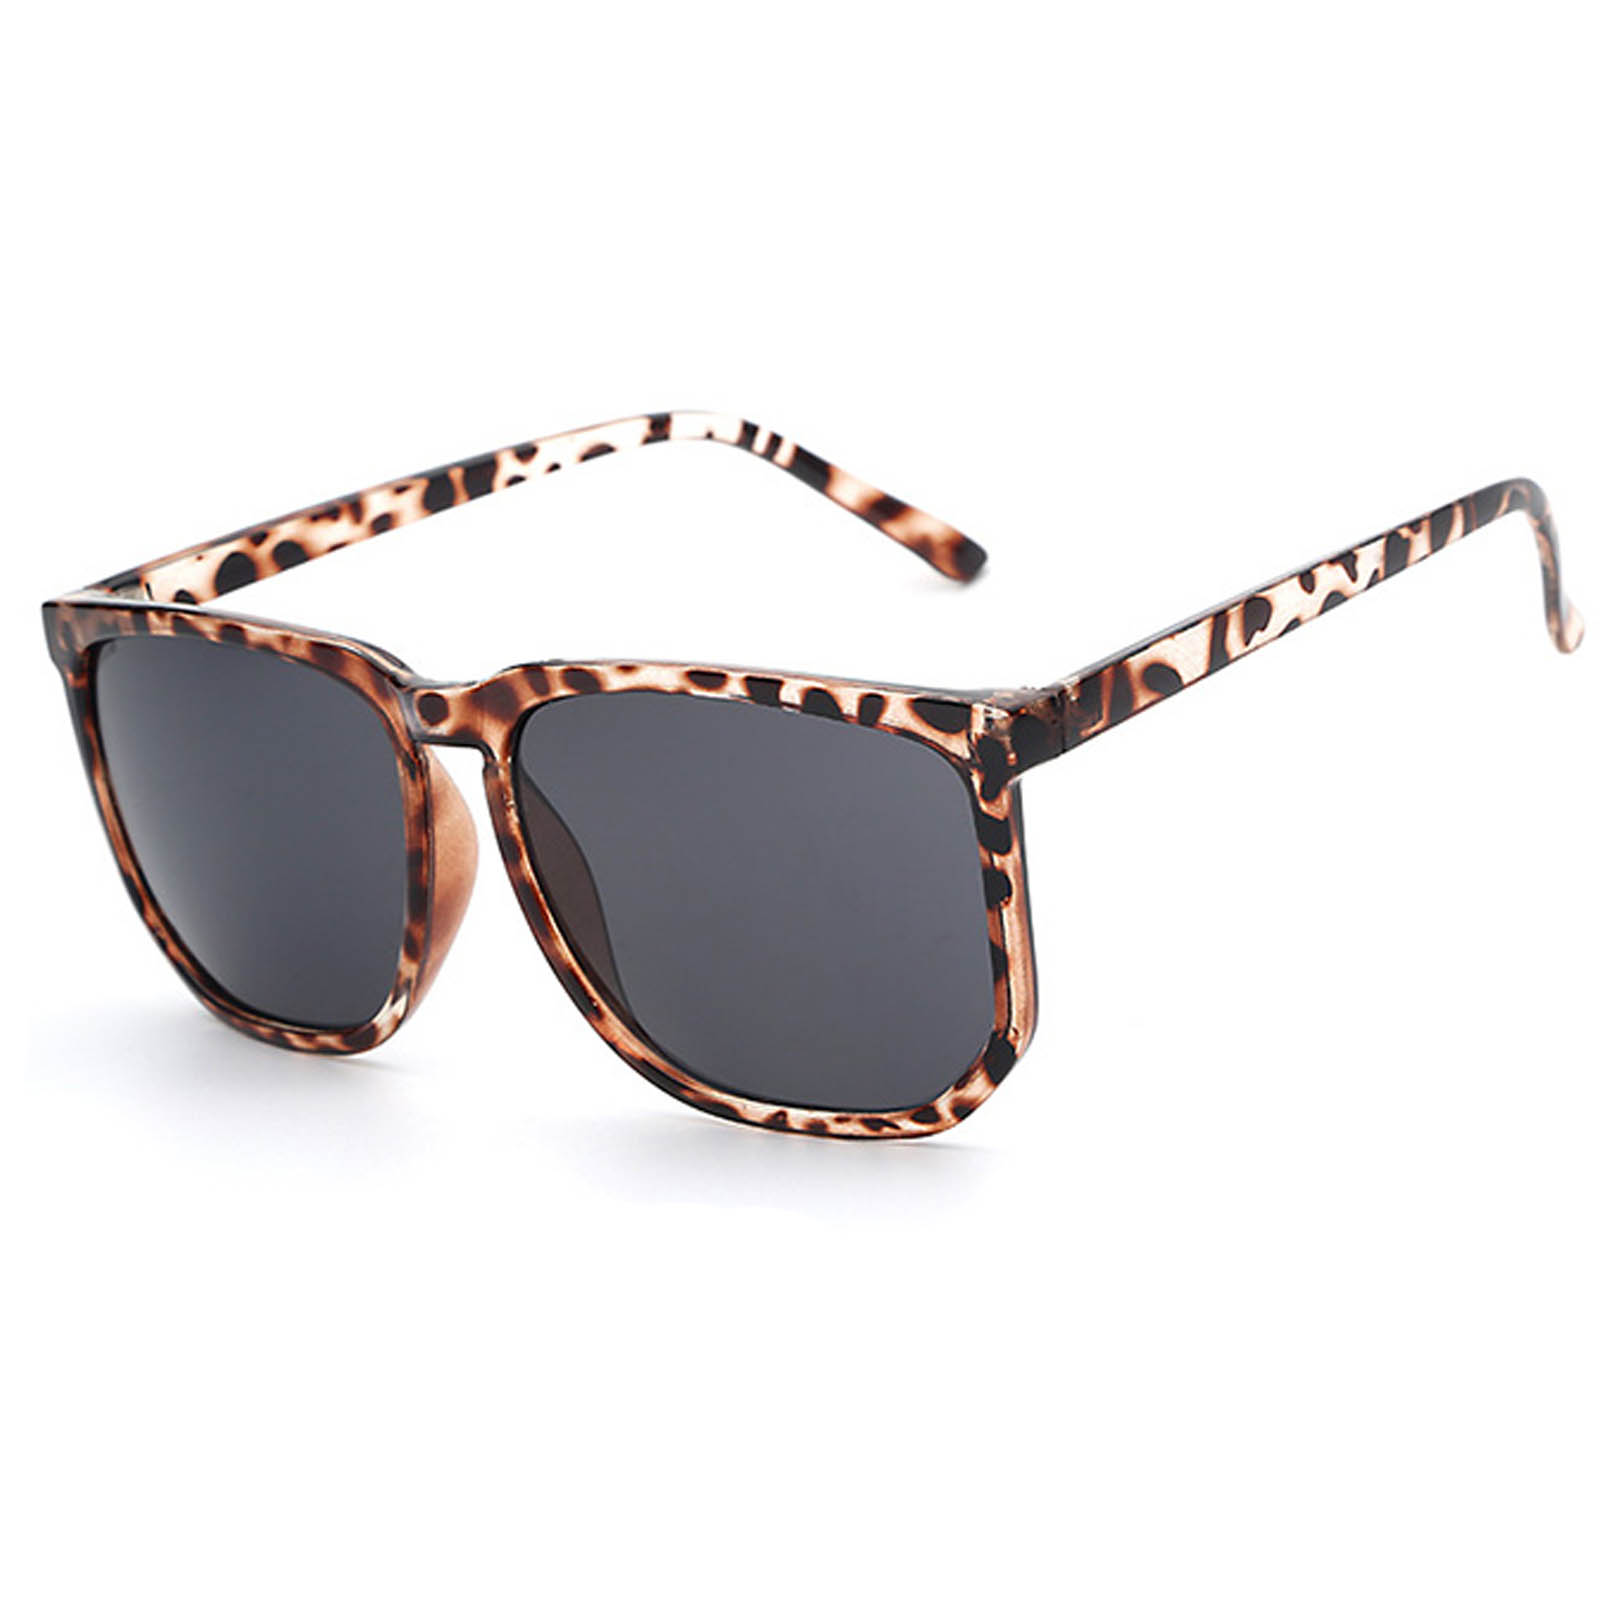 OWL ® 046 C2 Rectangle Eyewear Sunglasses Women's Men's Metal Leopard Frame Black Lens One Pair